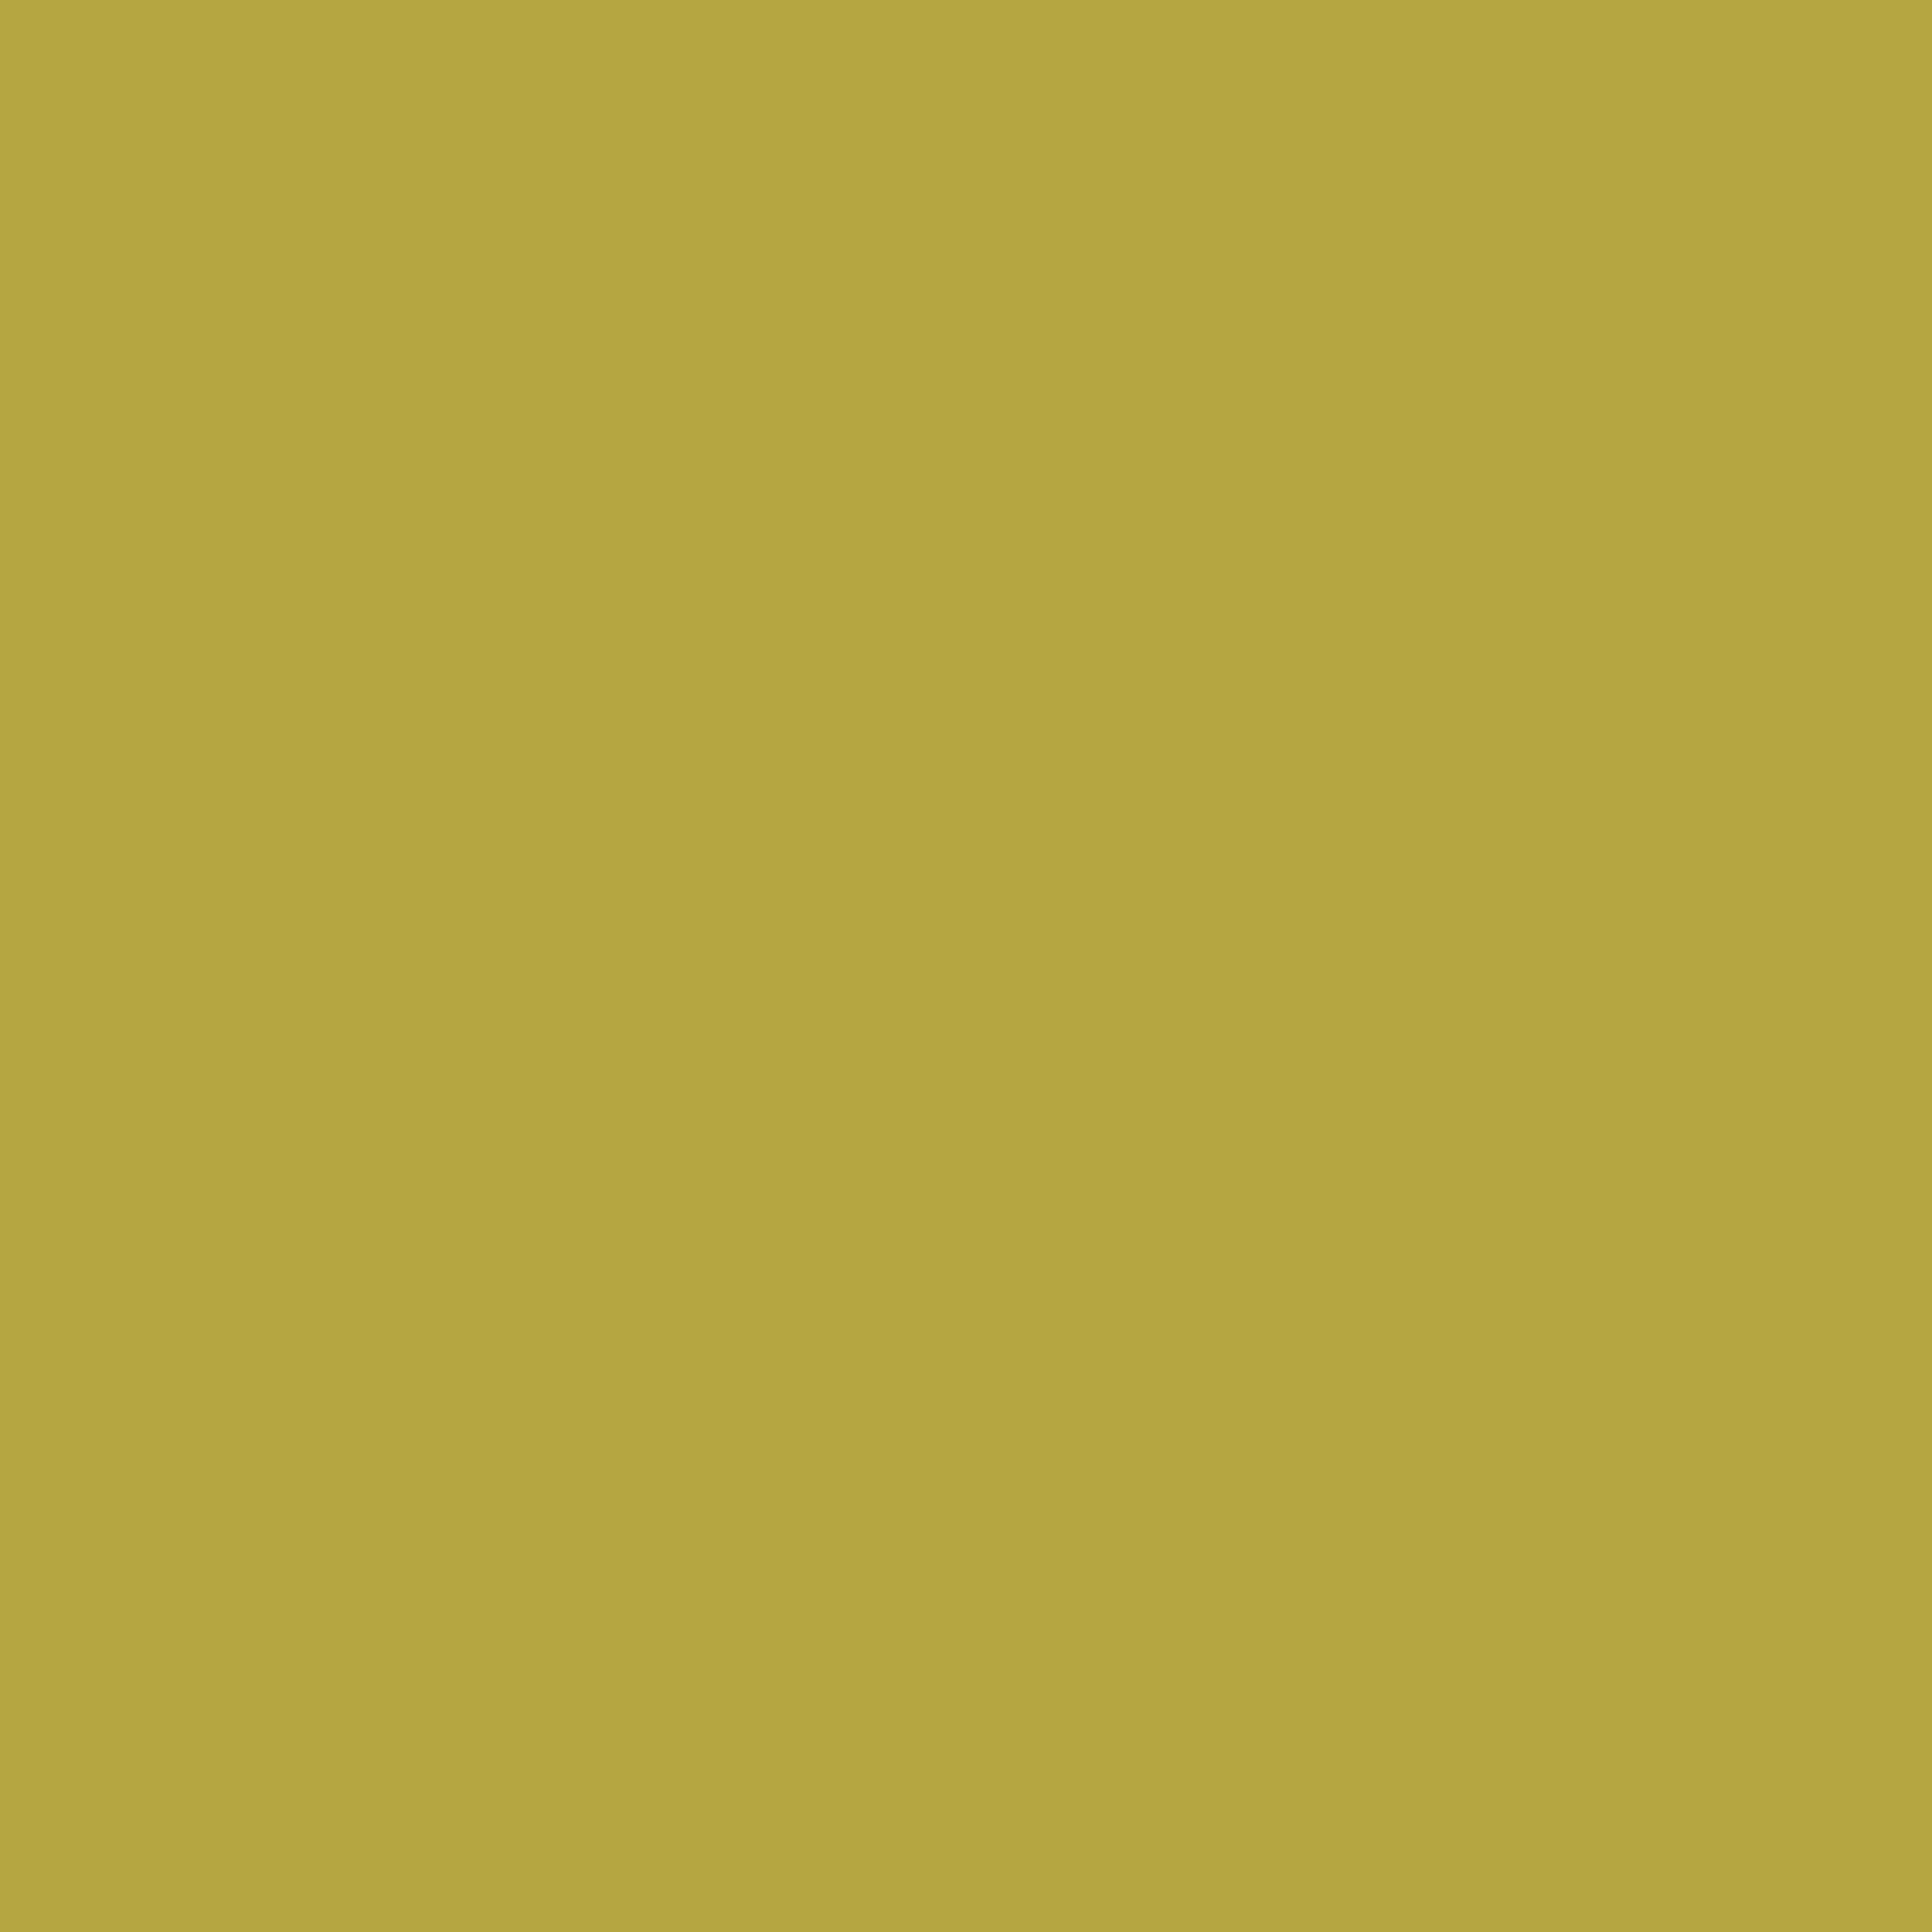 3600x3600 Brass Solid Color Background